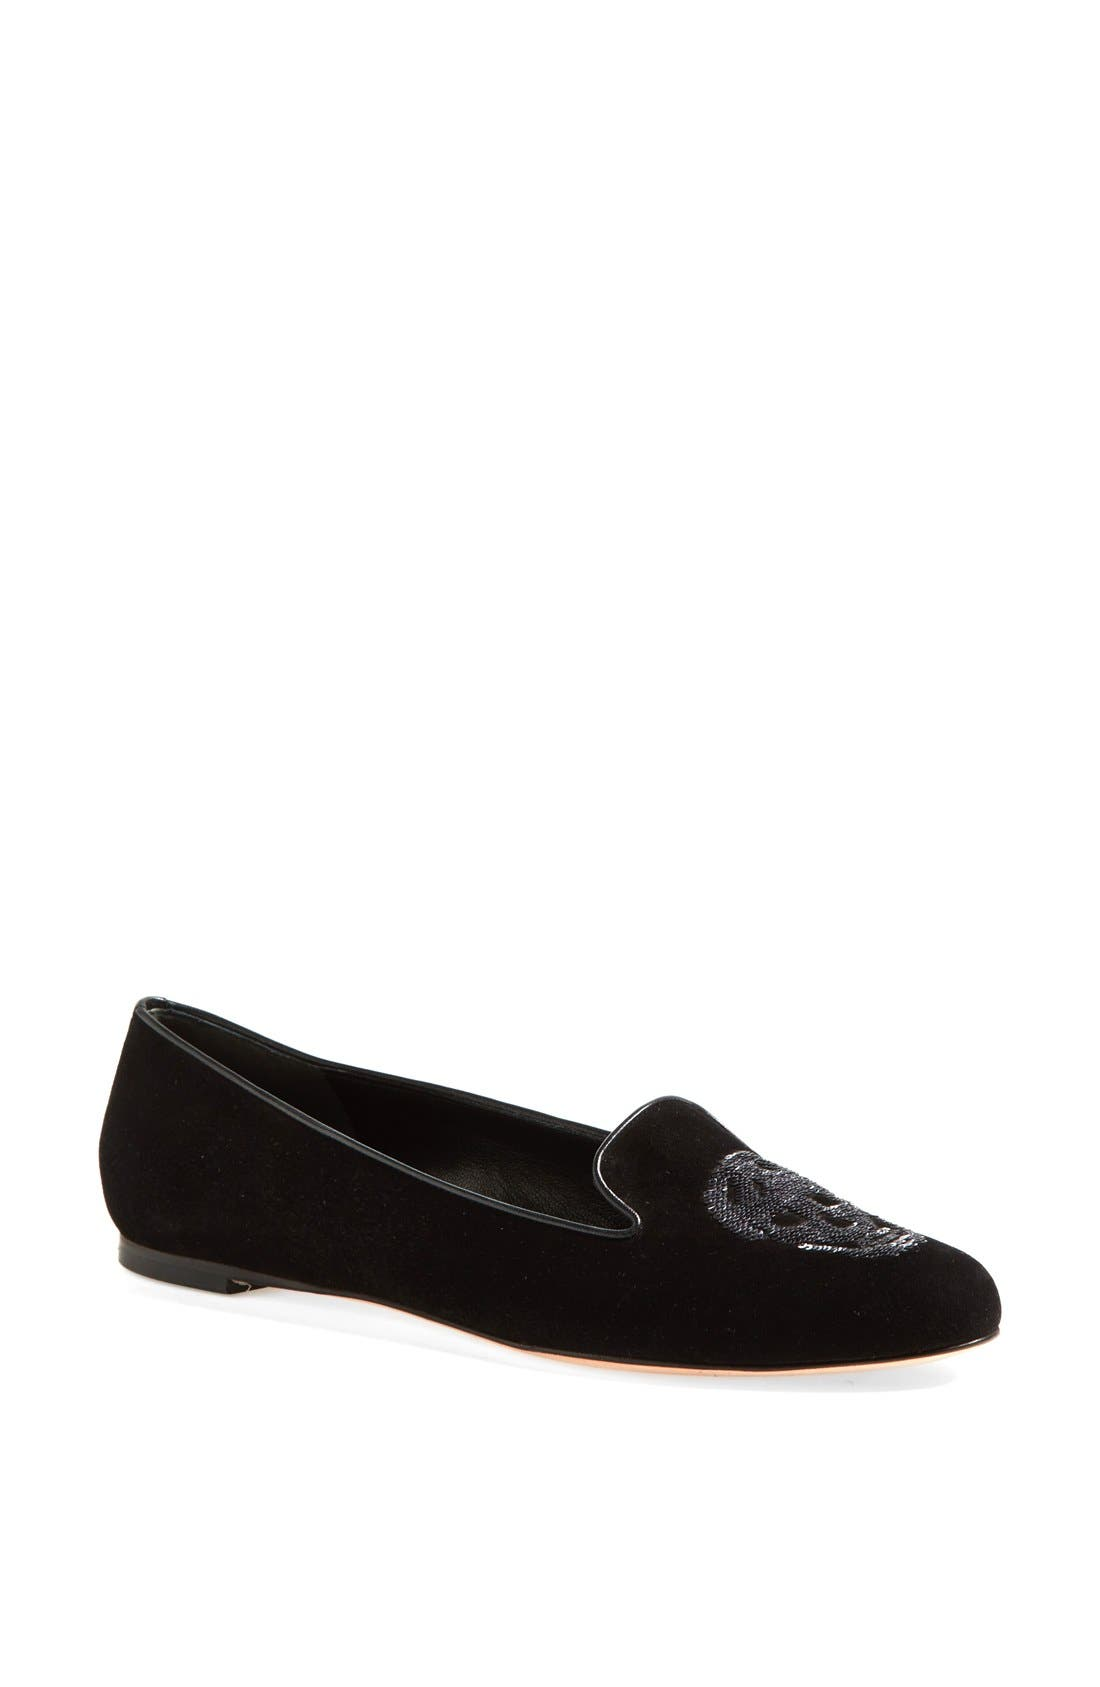 Alternate Image 1 Selected - Alexander McQueen Skull Flat